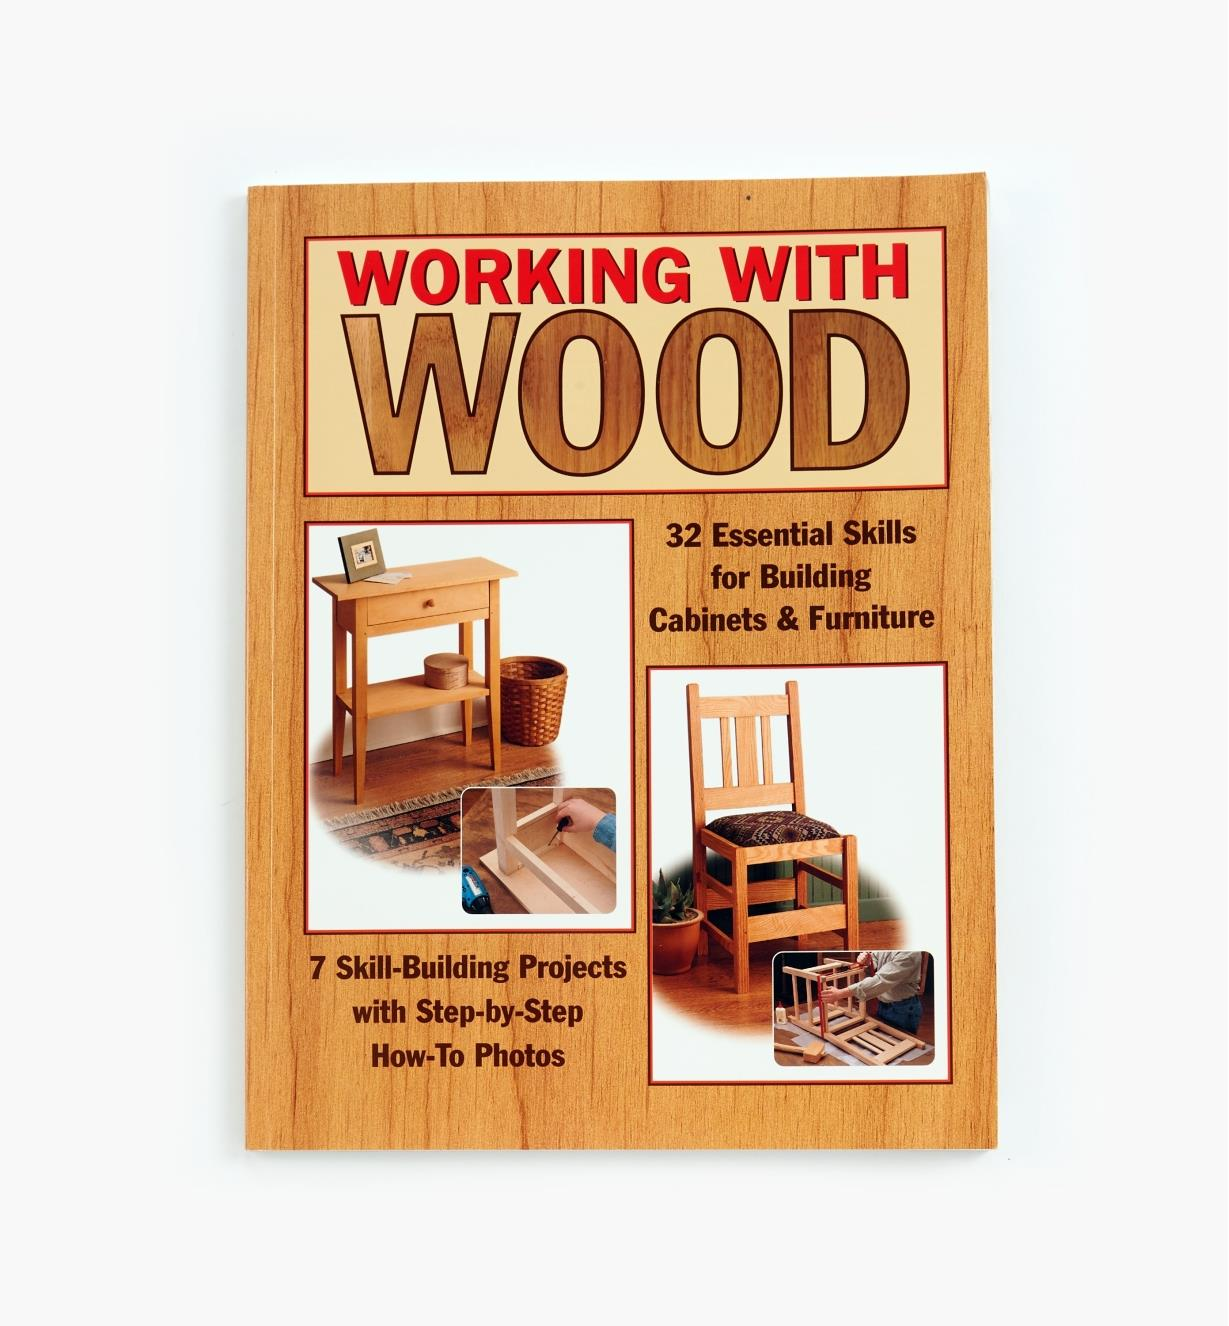 99W6537 - Working with Wood